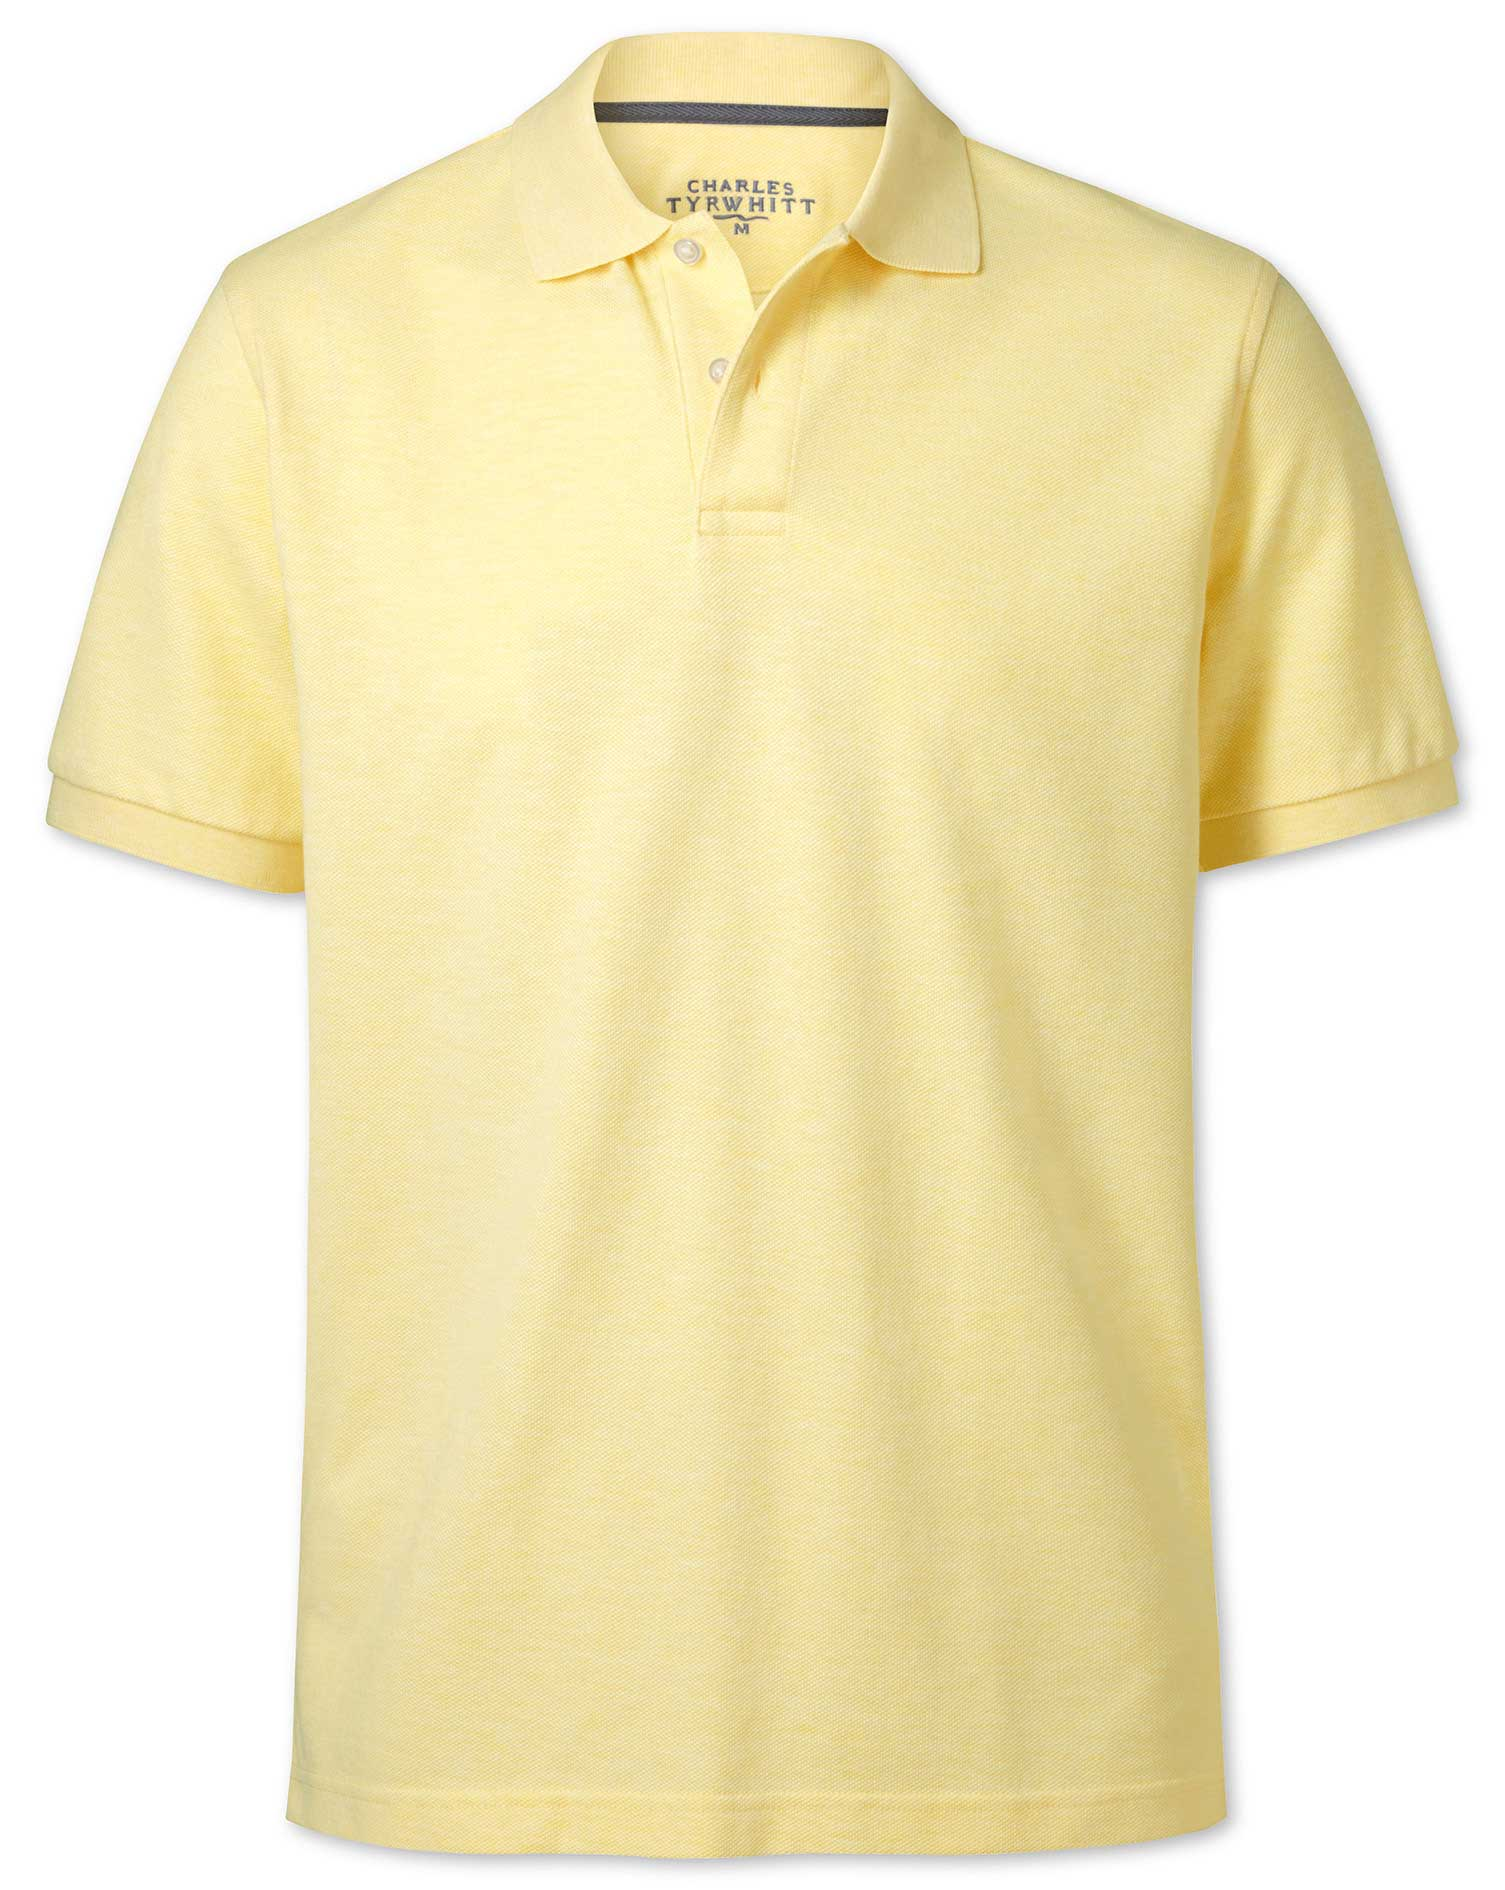 Light Yellow Melange Pique Cotton Polo Size Small by Charles Tyrwhitt